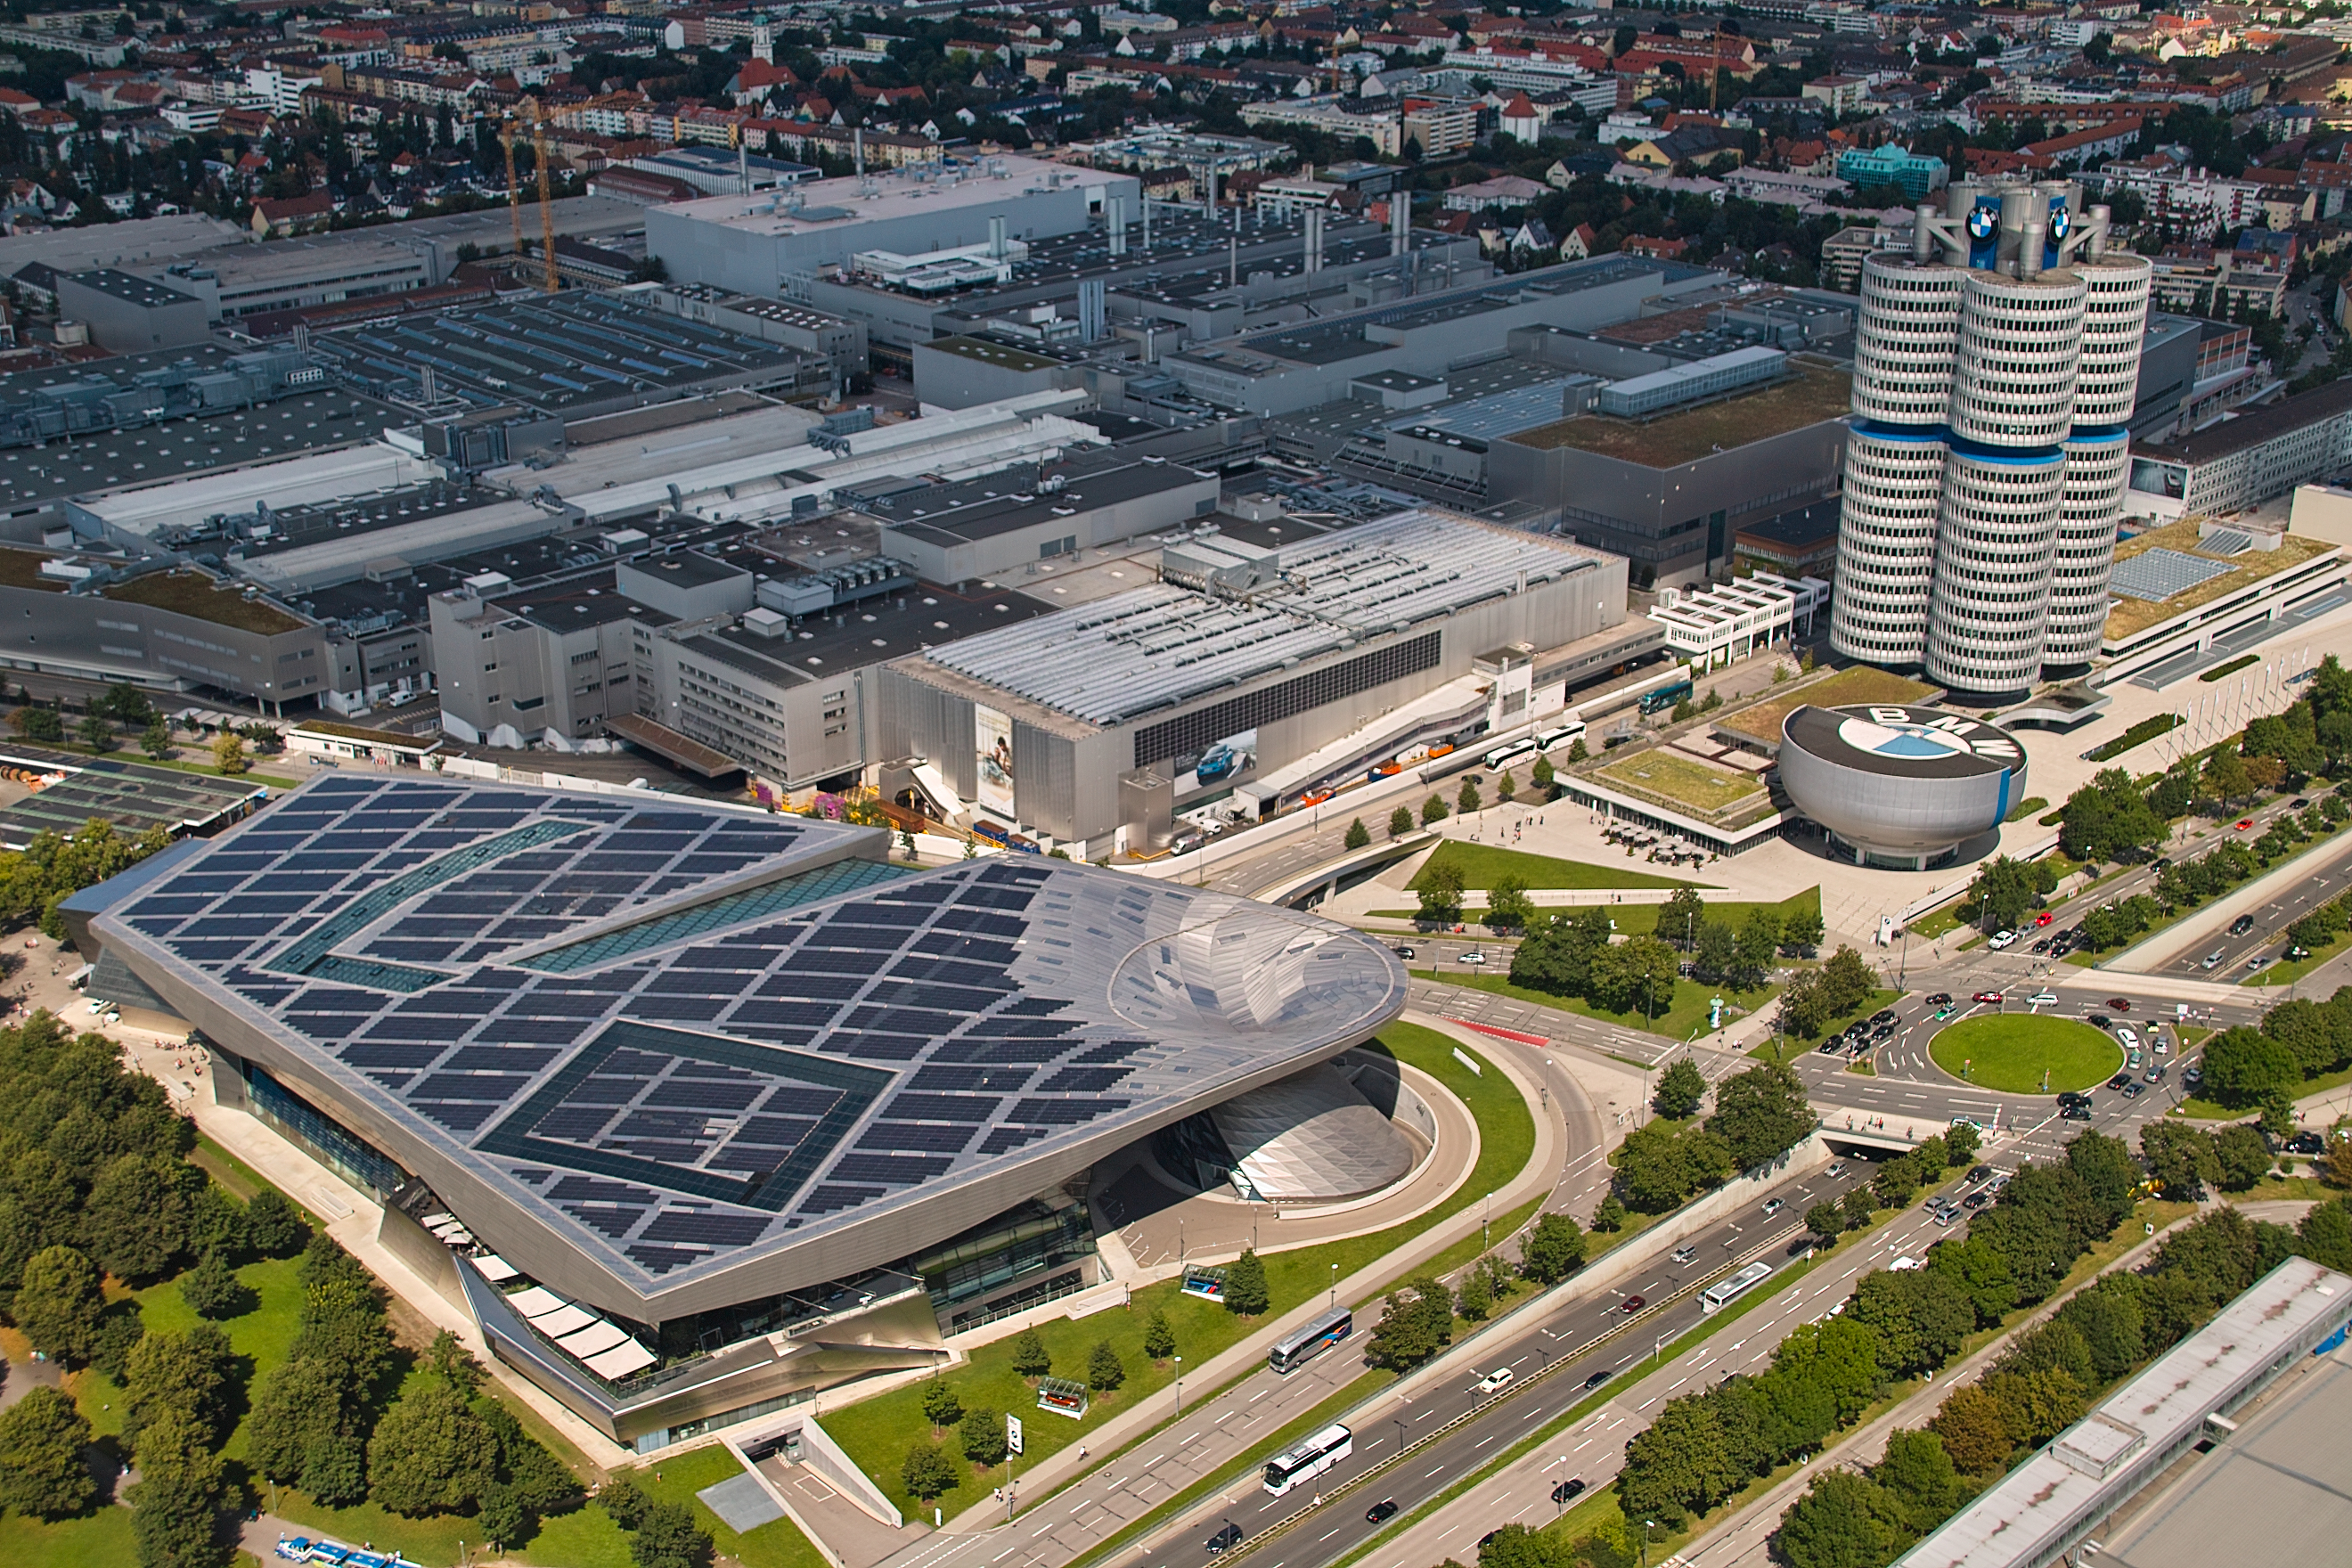 BMW World, museum and factory